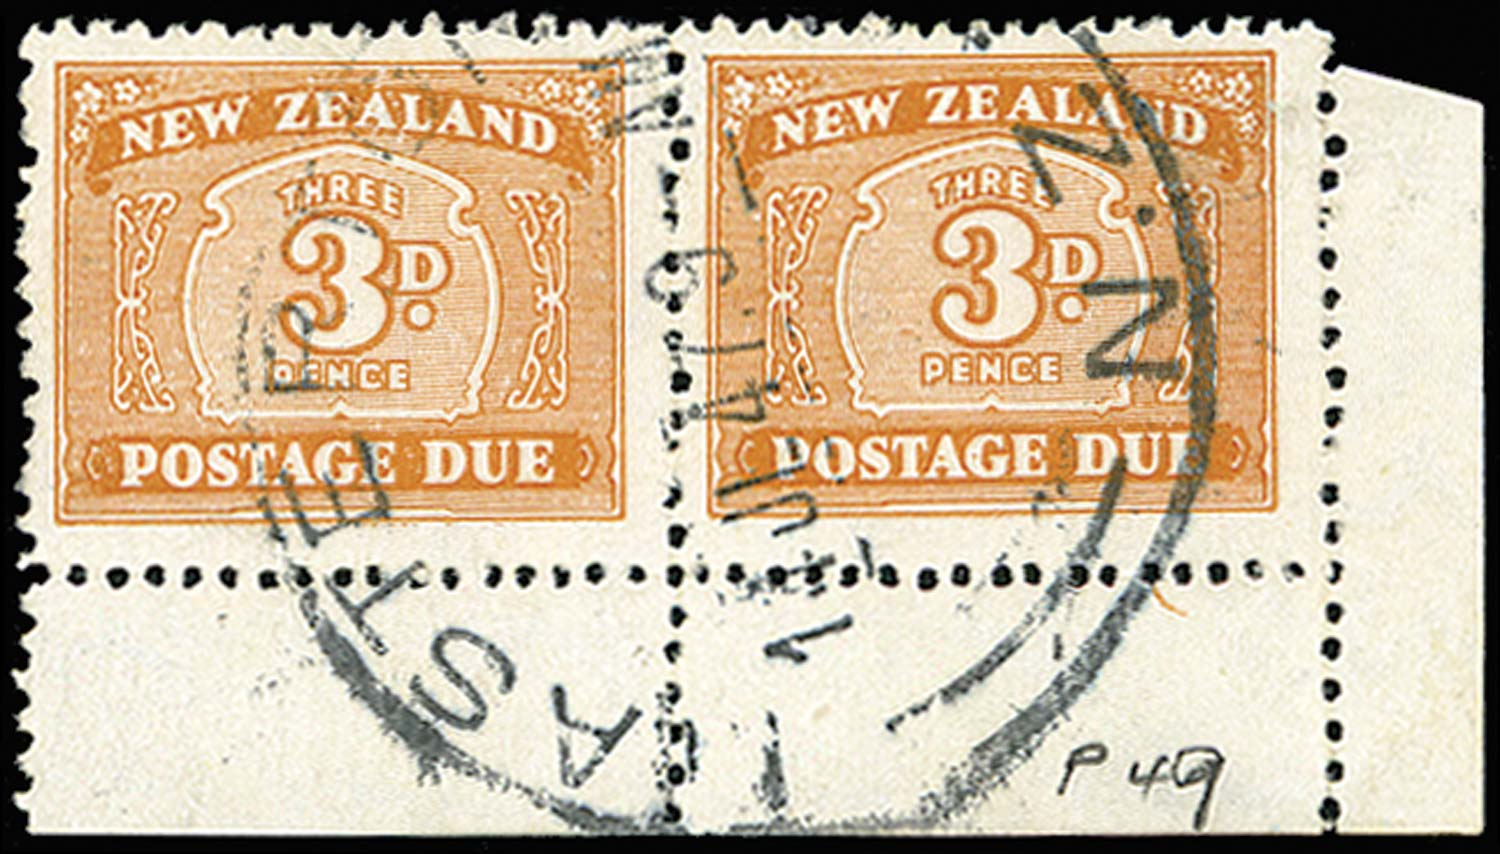 NEW ZEALAND 1939  SGD47 Postage Due